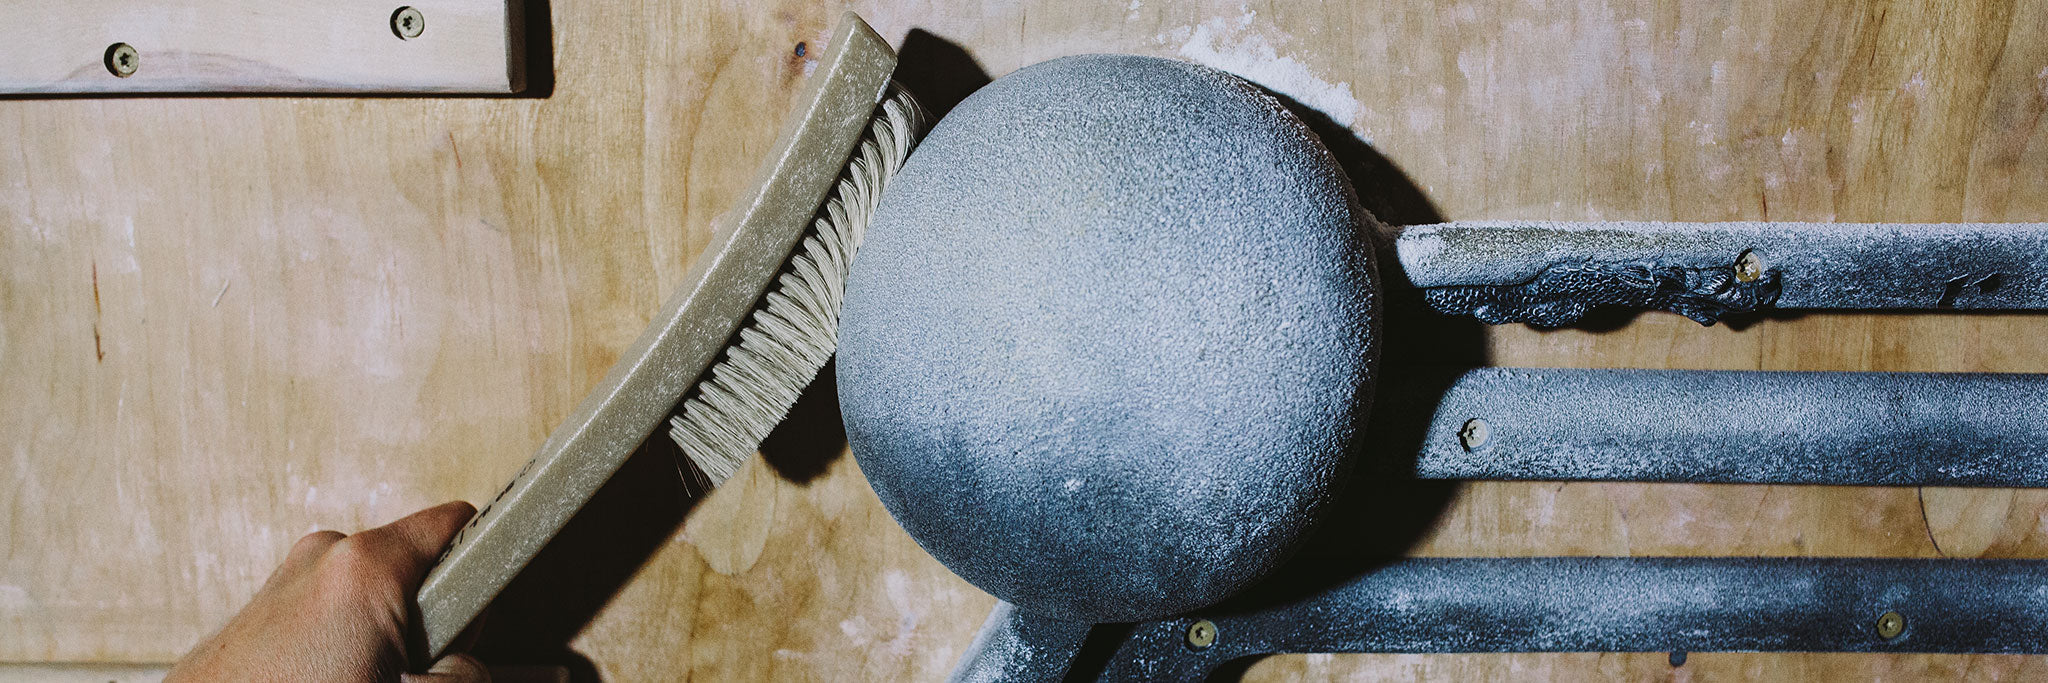 Sloper Brush being used to clean hang board